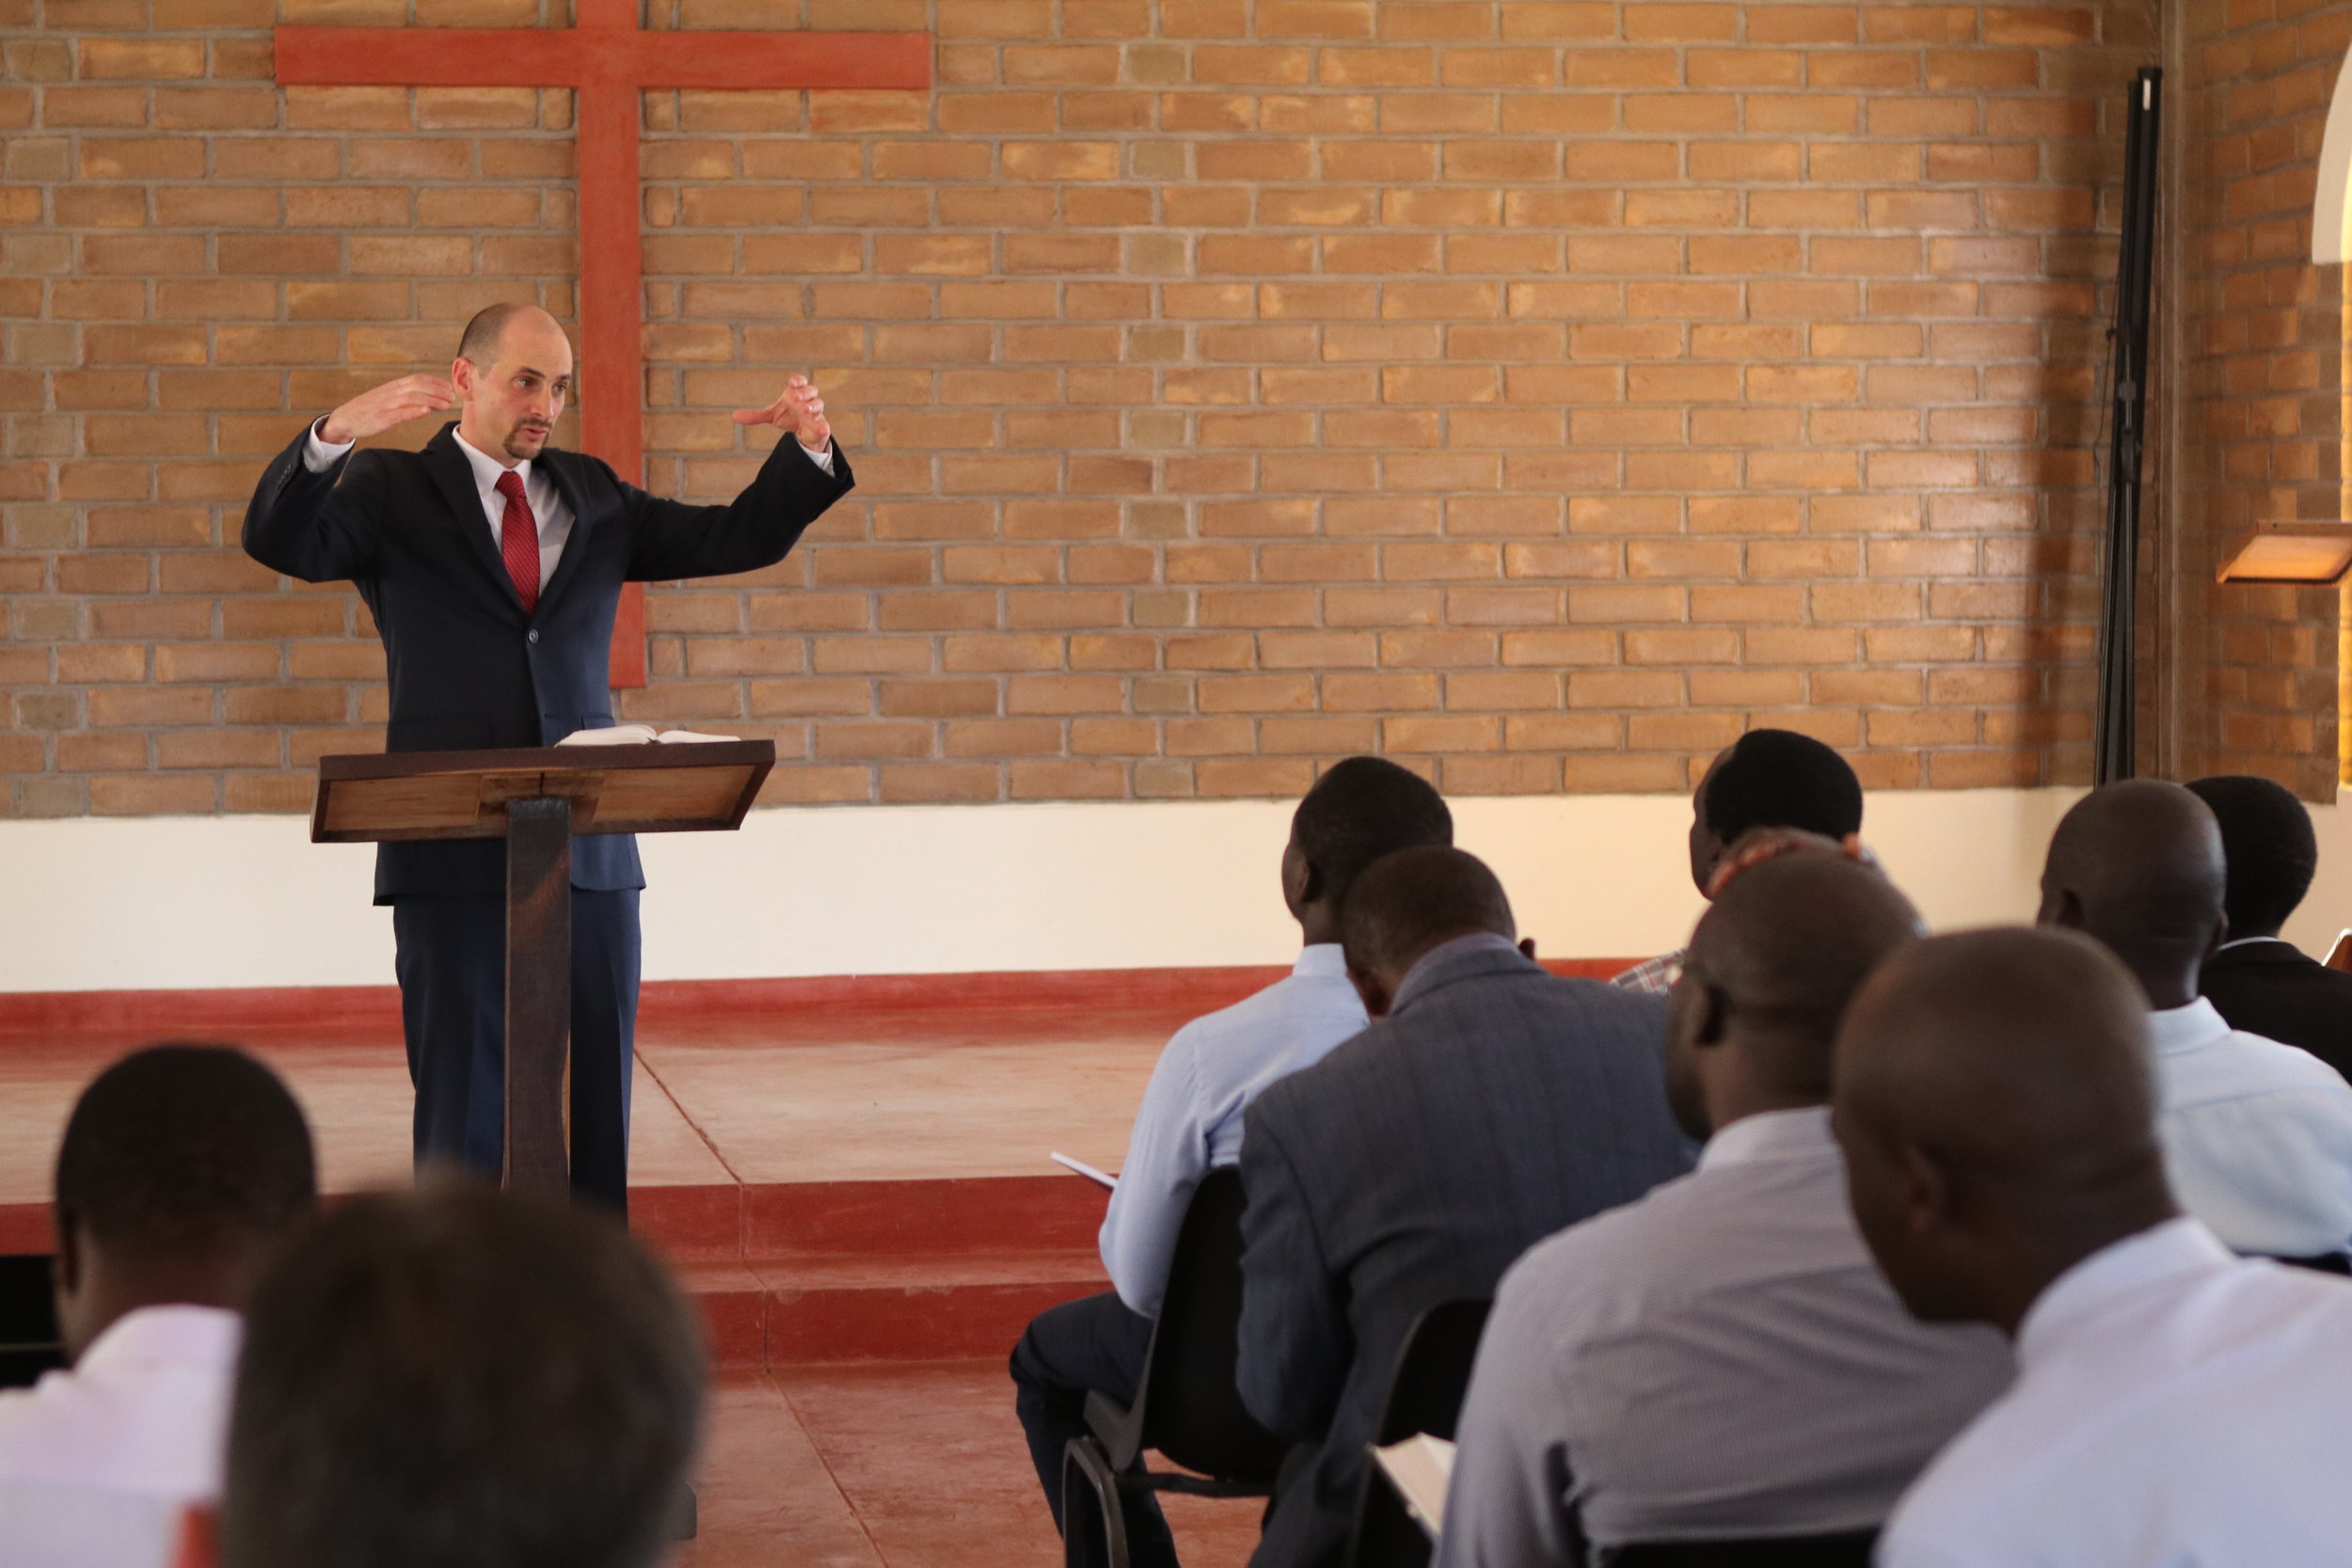 Dave Temple, then the dean of academics, preaches to students during chapel.